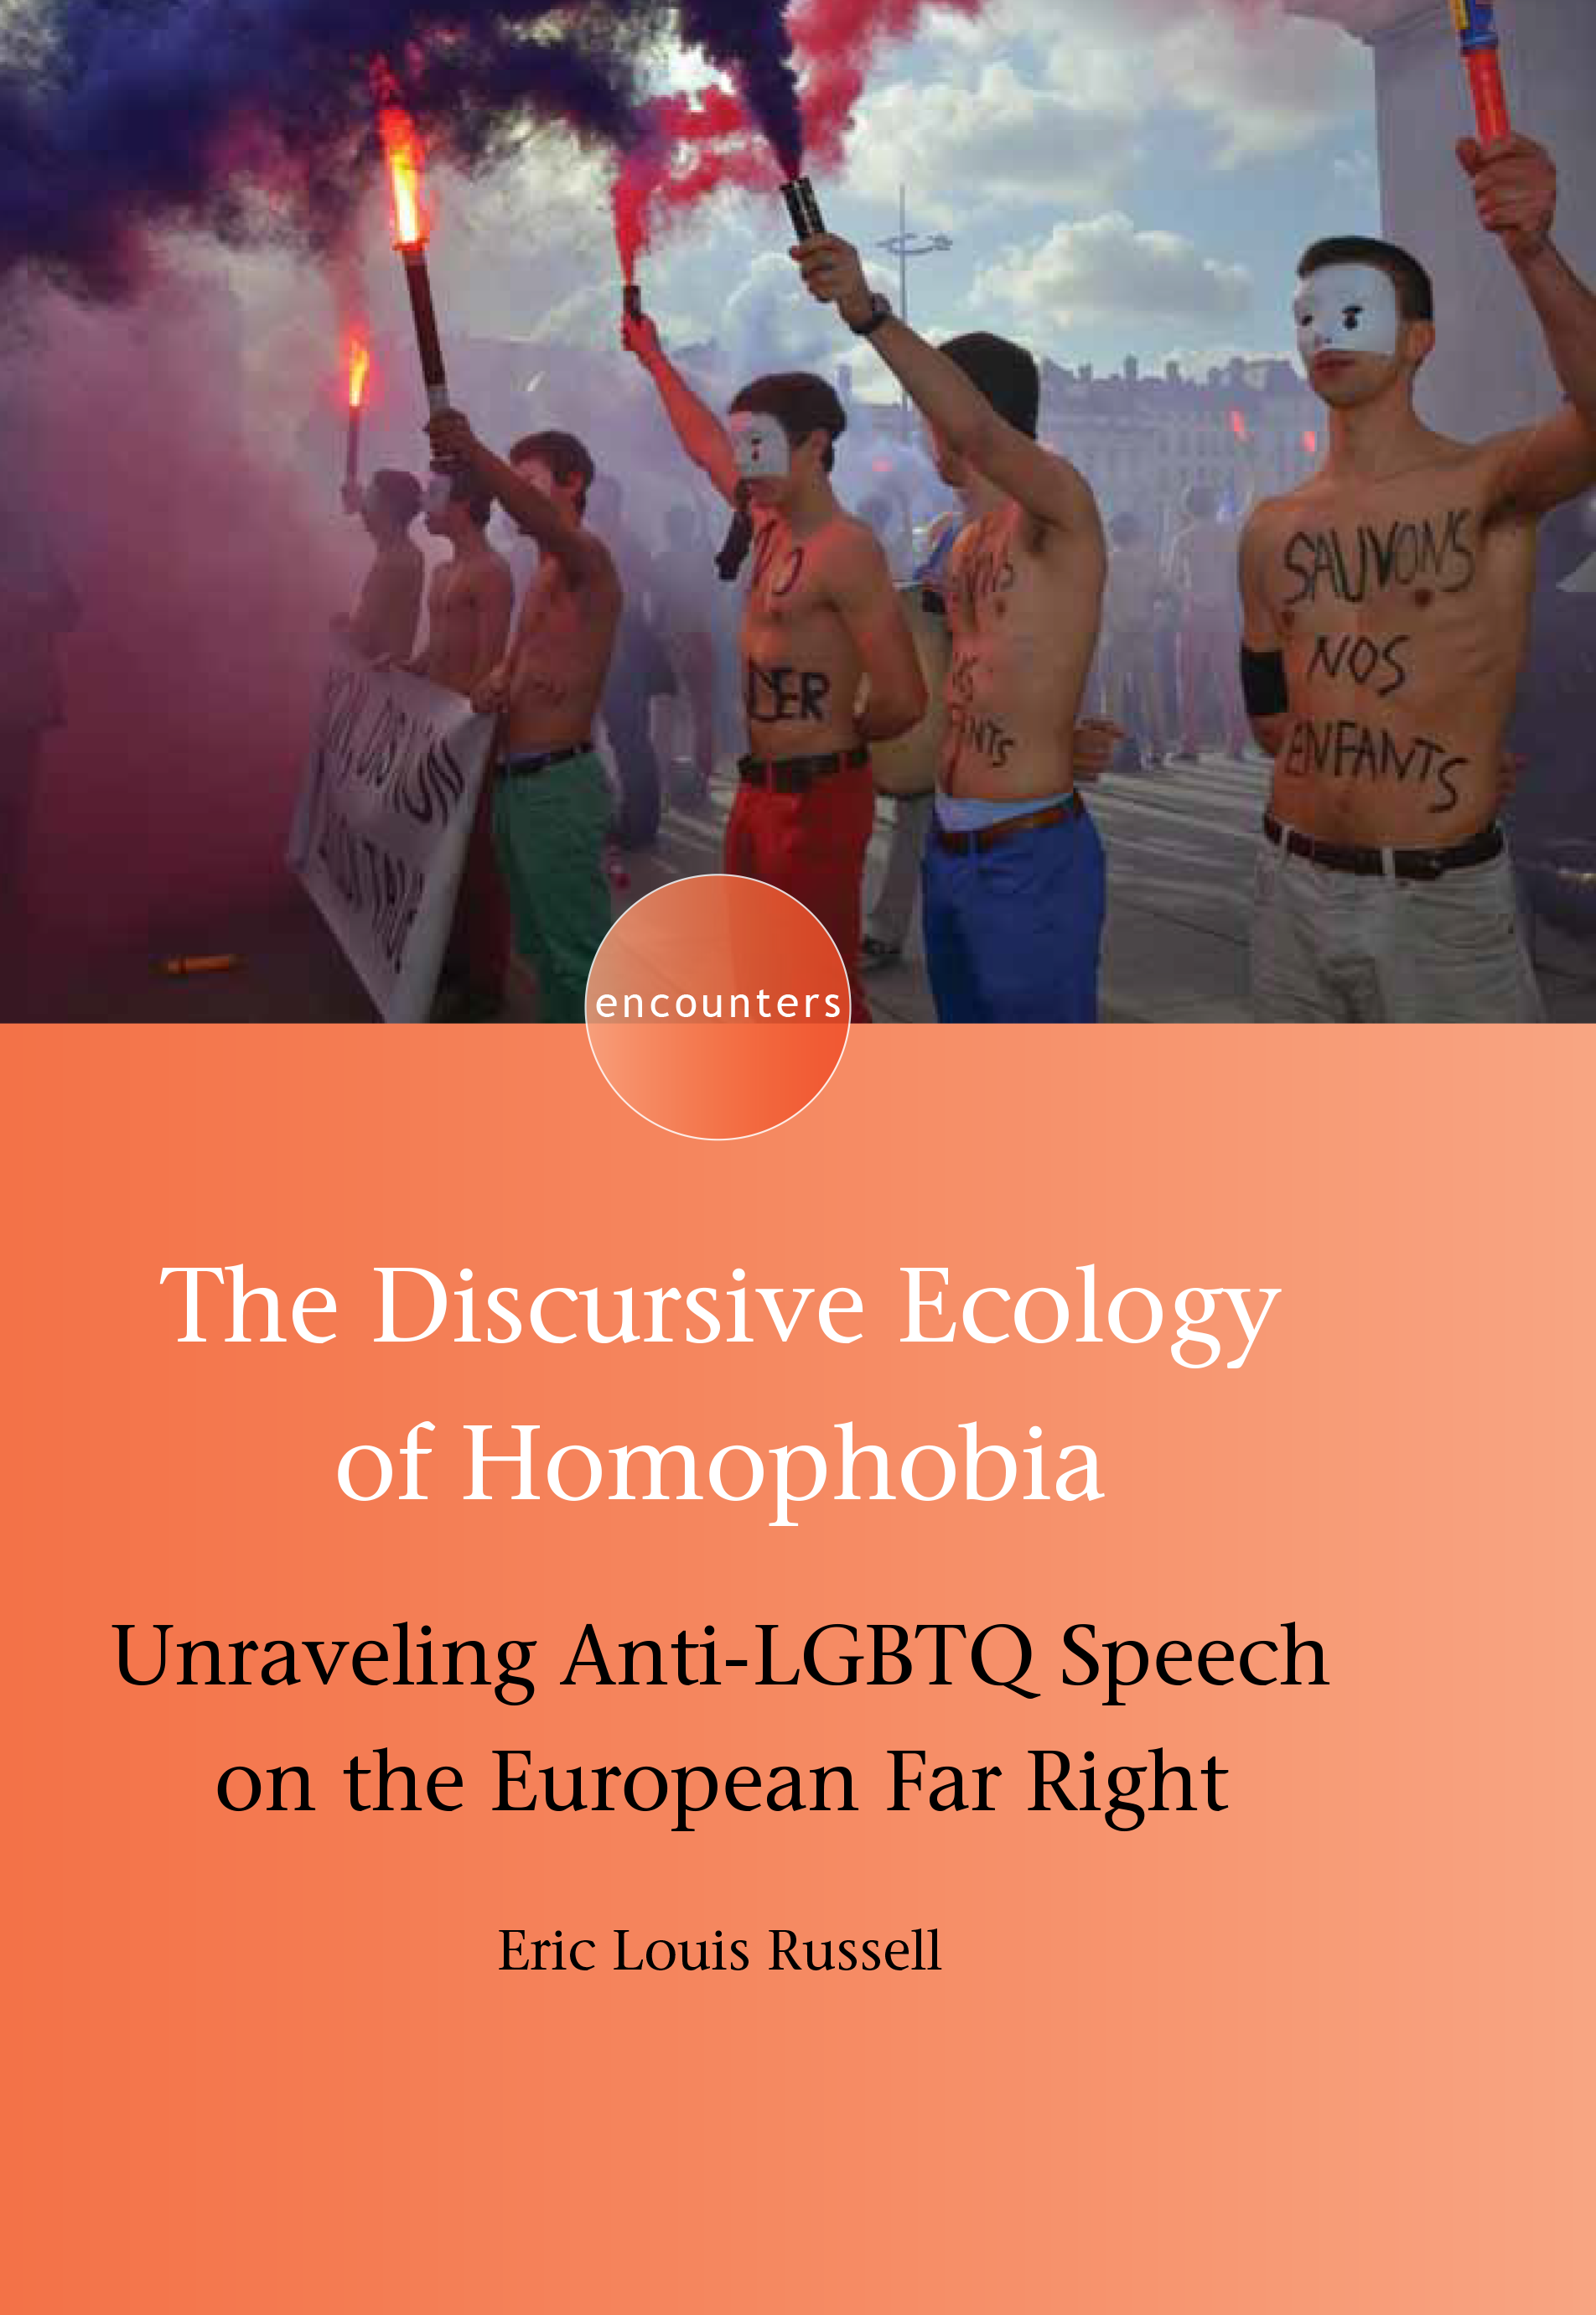 Cover of The Discursive Ecology of Homophobia features masked protesters Les Hommen